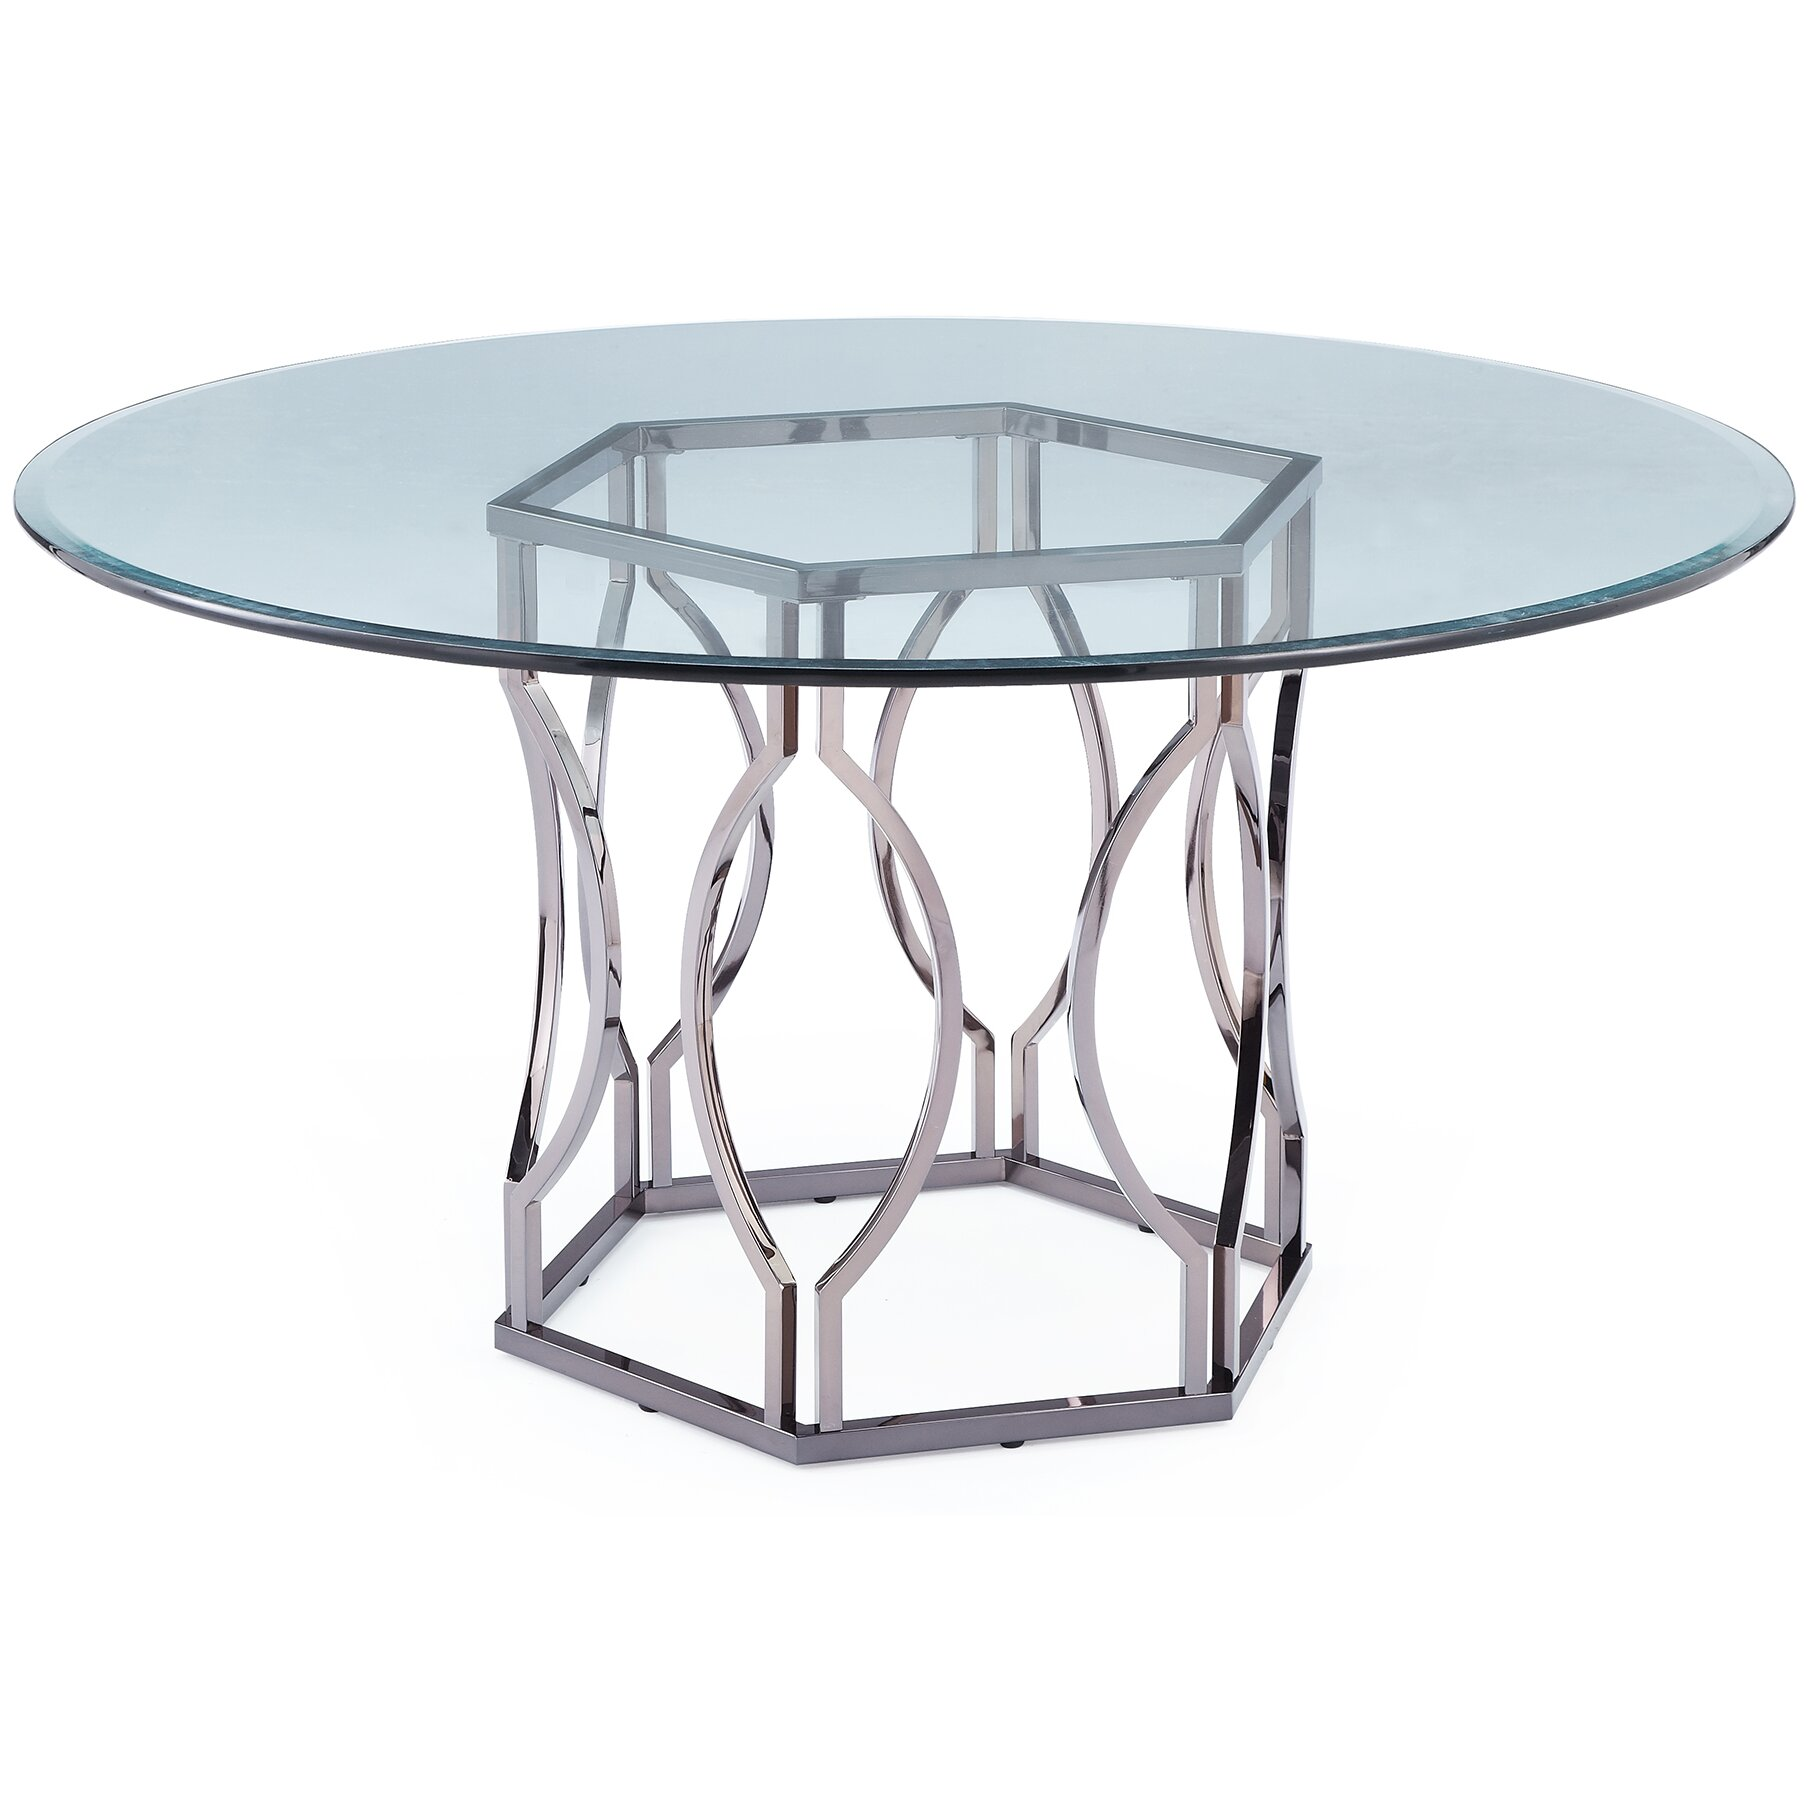 mercer41 viggo round glass dining table reviews wayfair